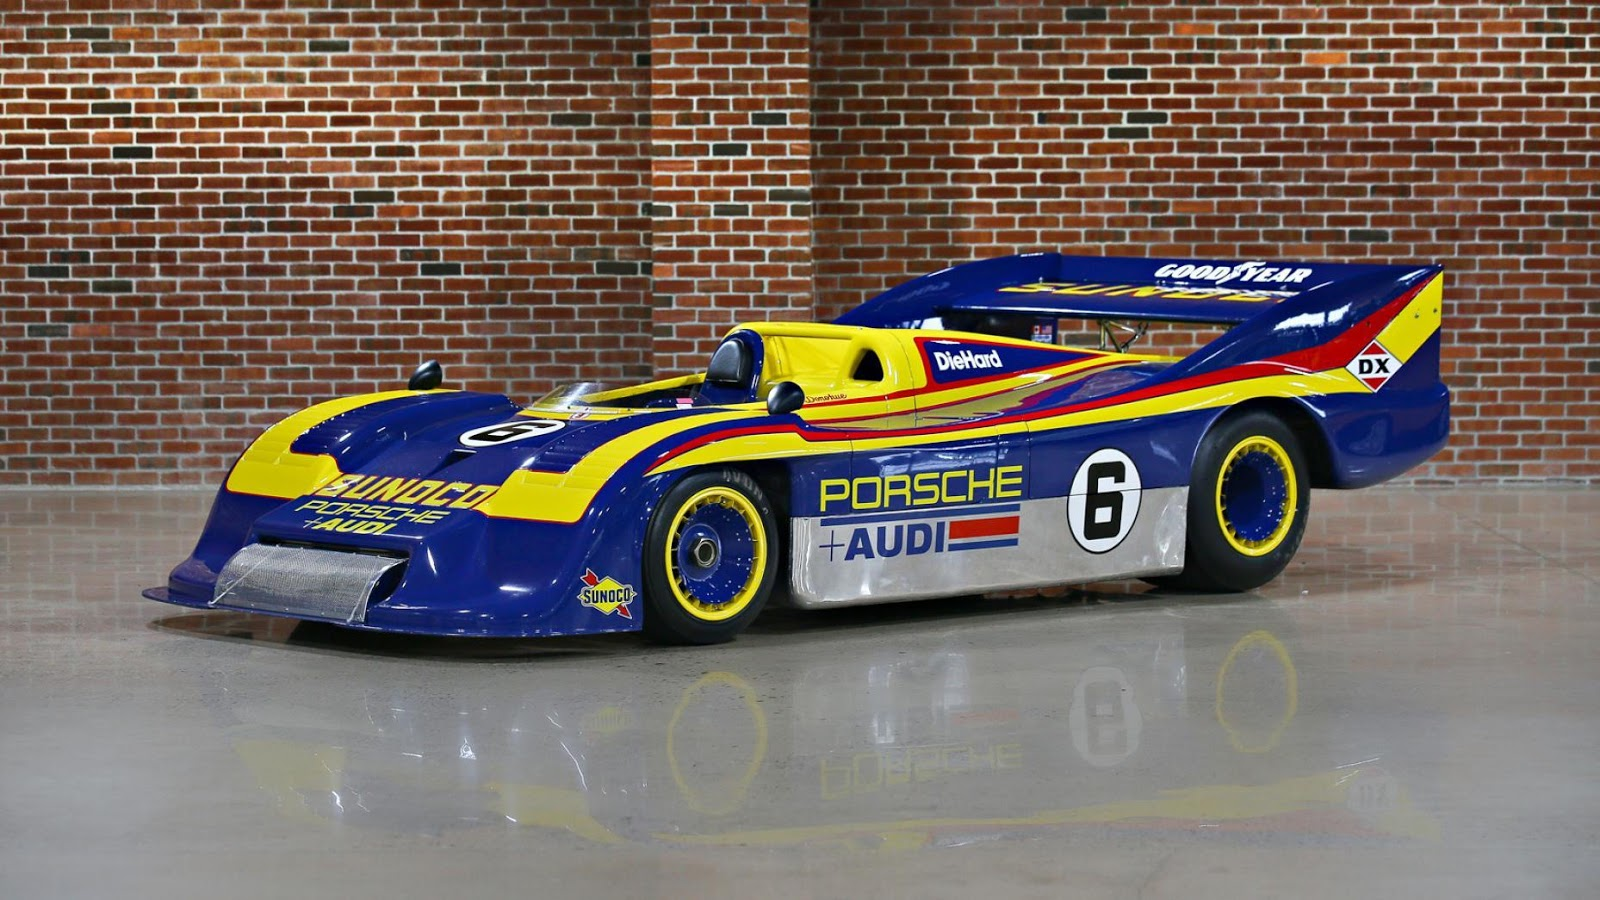 1973 Porsche 917/30 Can Am Spyder: $3,000,000